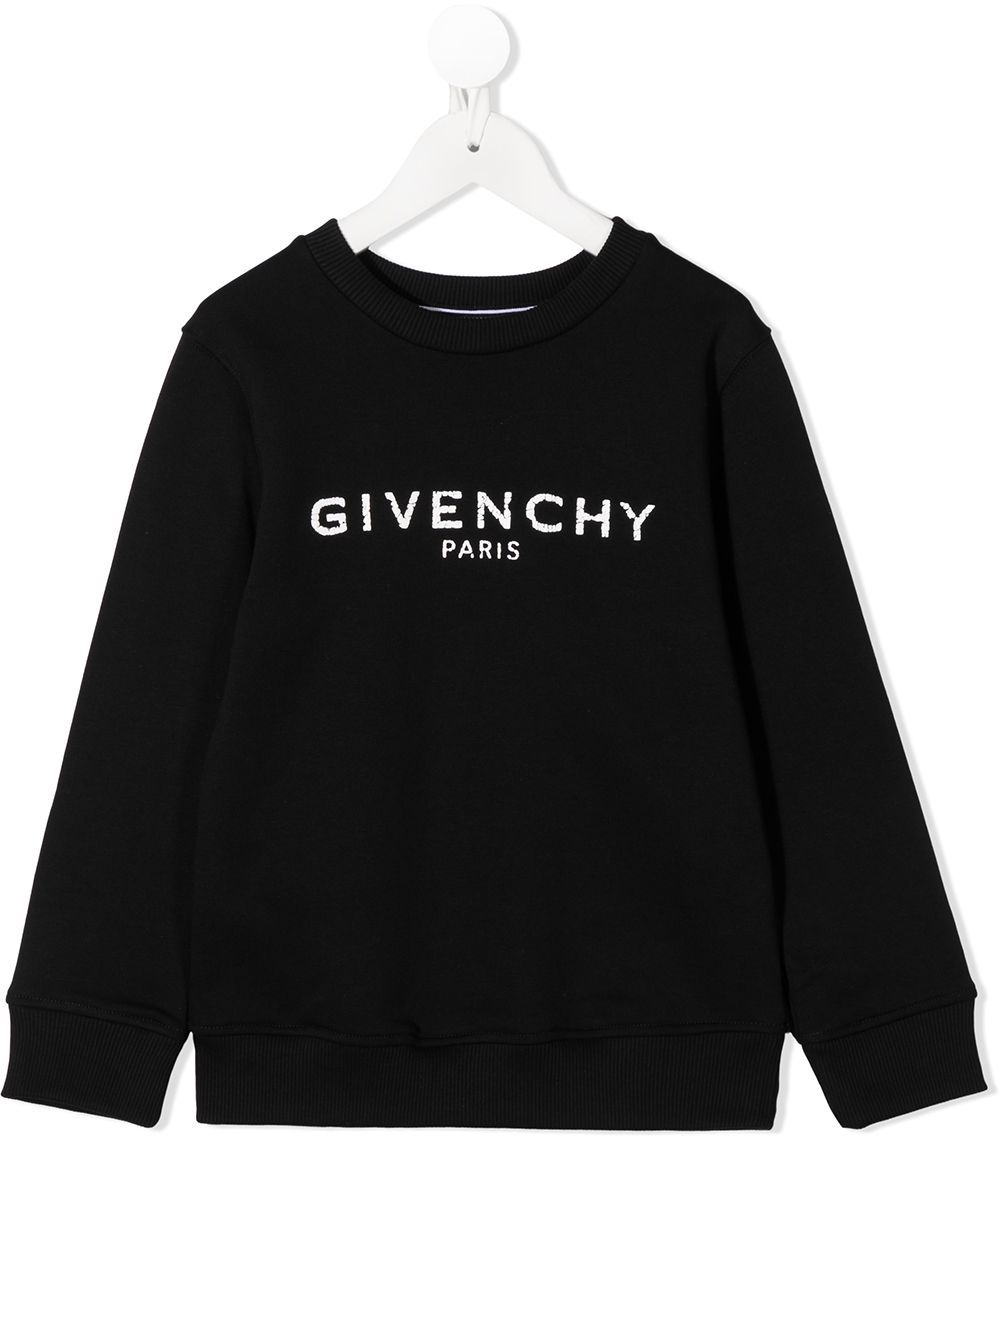 GIVENCHY KIDS Logo Sweatshirt Black/White